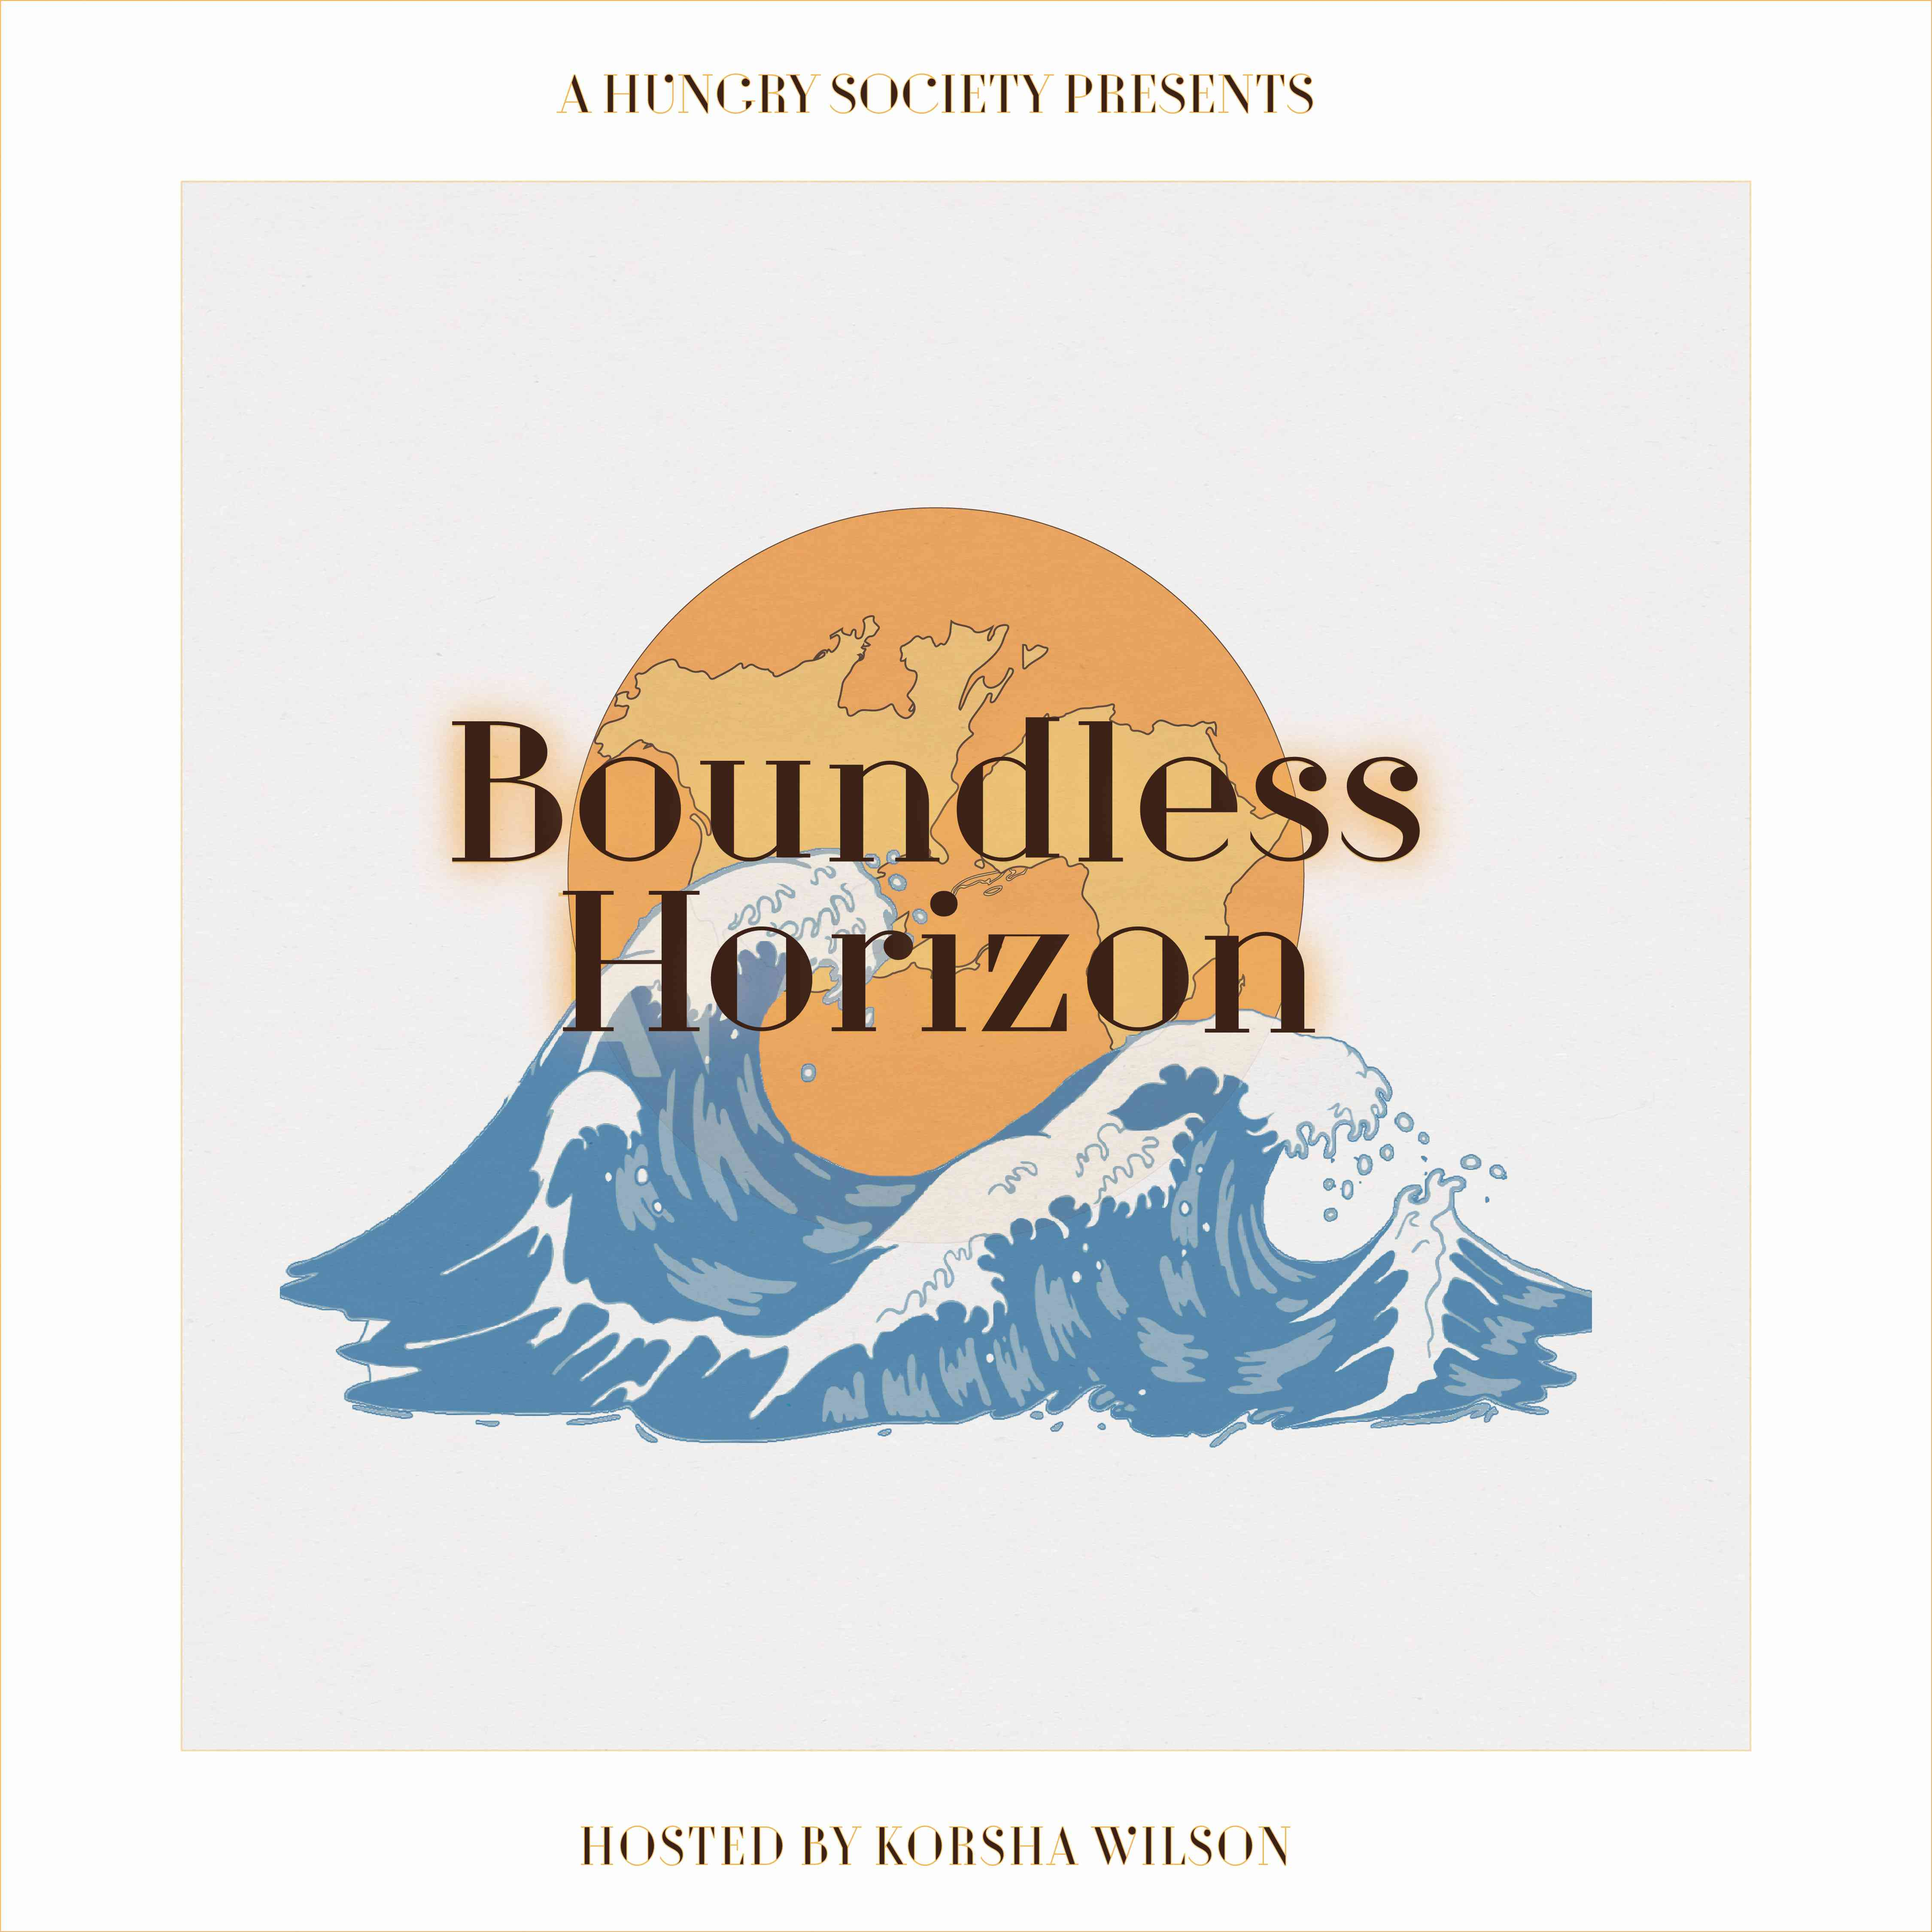 image of boundless horizon logo: sun and waves with title across